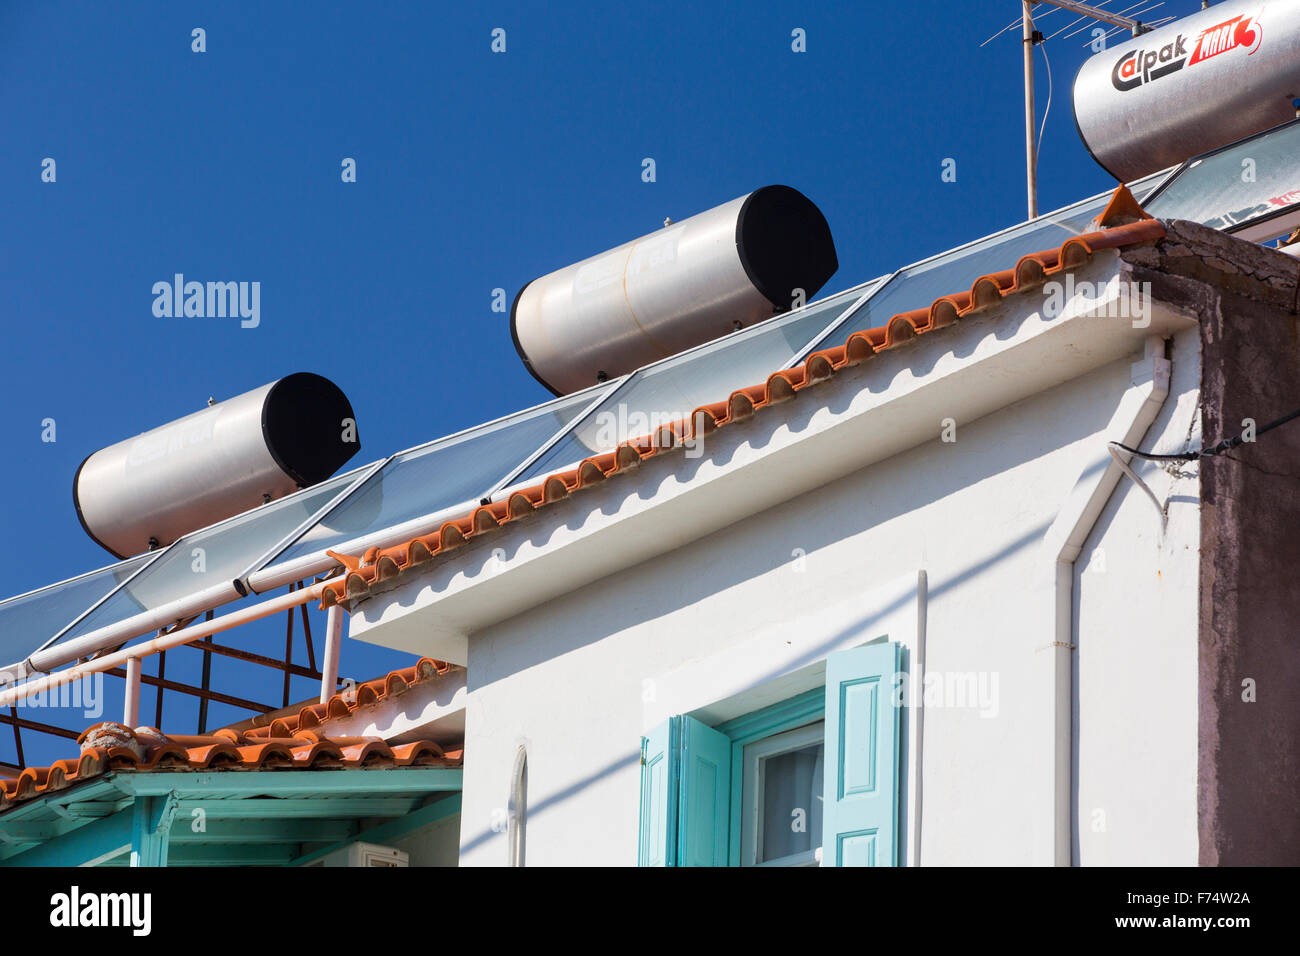 Accommodation with solar thermal water heating panels on the roof in Skala Eresou, on Lesvos, Greece. Stock Photo